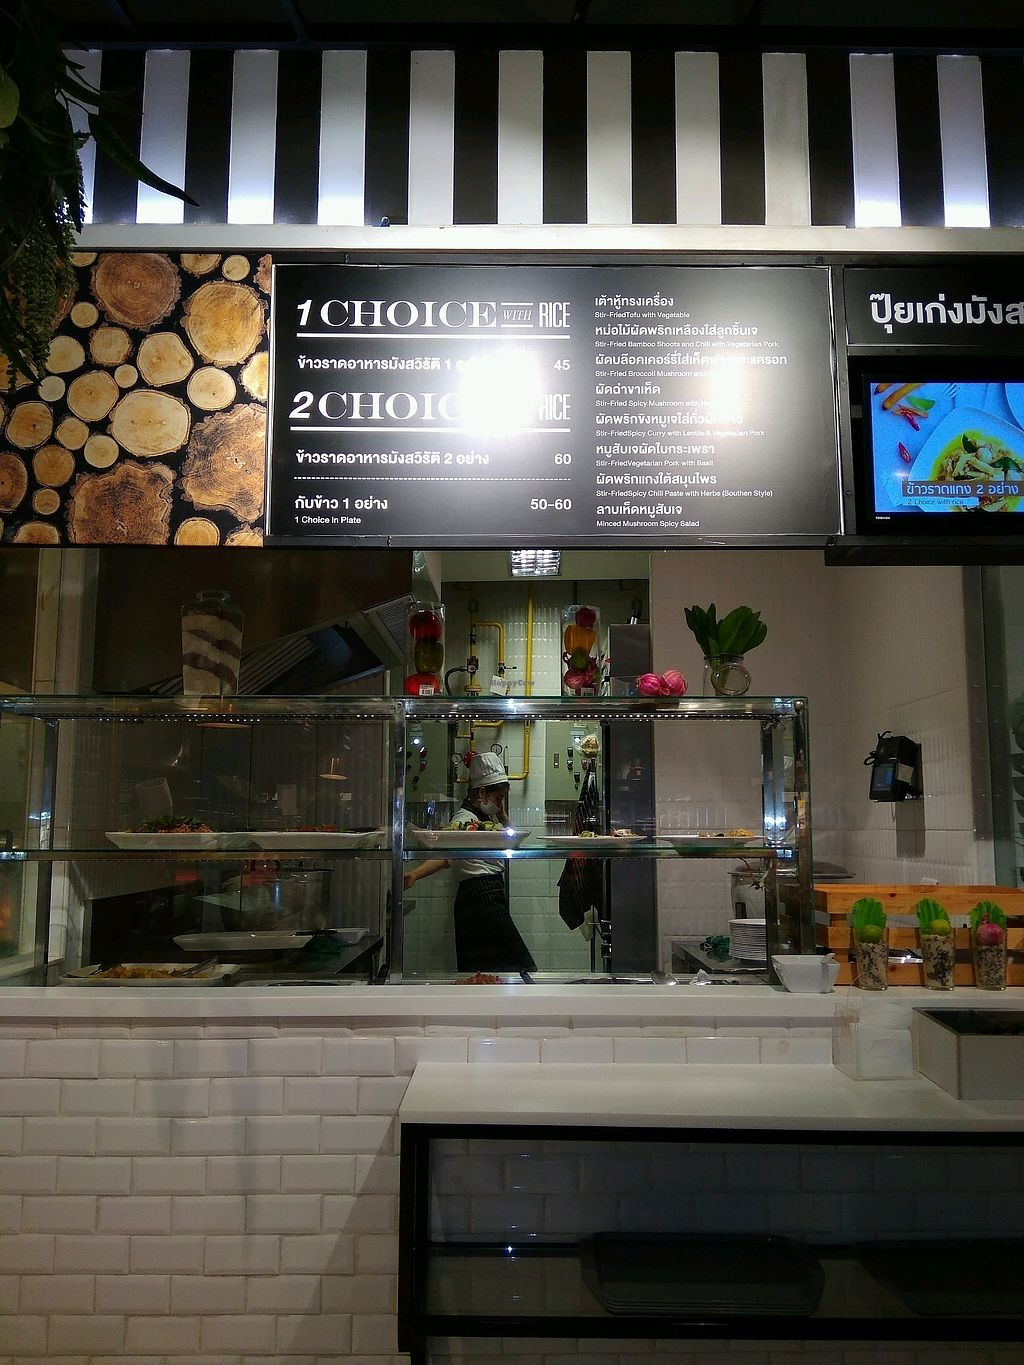 """Photo of Vegetarian Food Court Stall  by <a href=""""/members/profile/JustinRogers"""">JustinRogers</a> <br/>This is what you are looking for! <br/> April 9, 2018  - <a href='/contact/abuse/image/76363/382906'>Report</a>"""